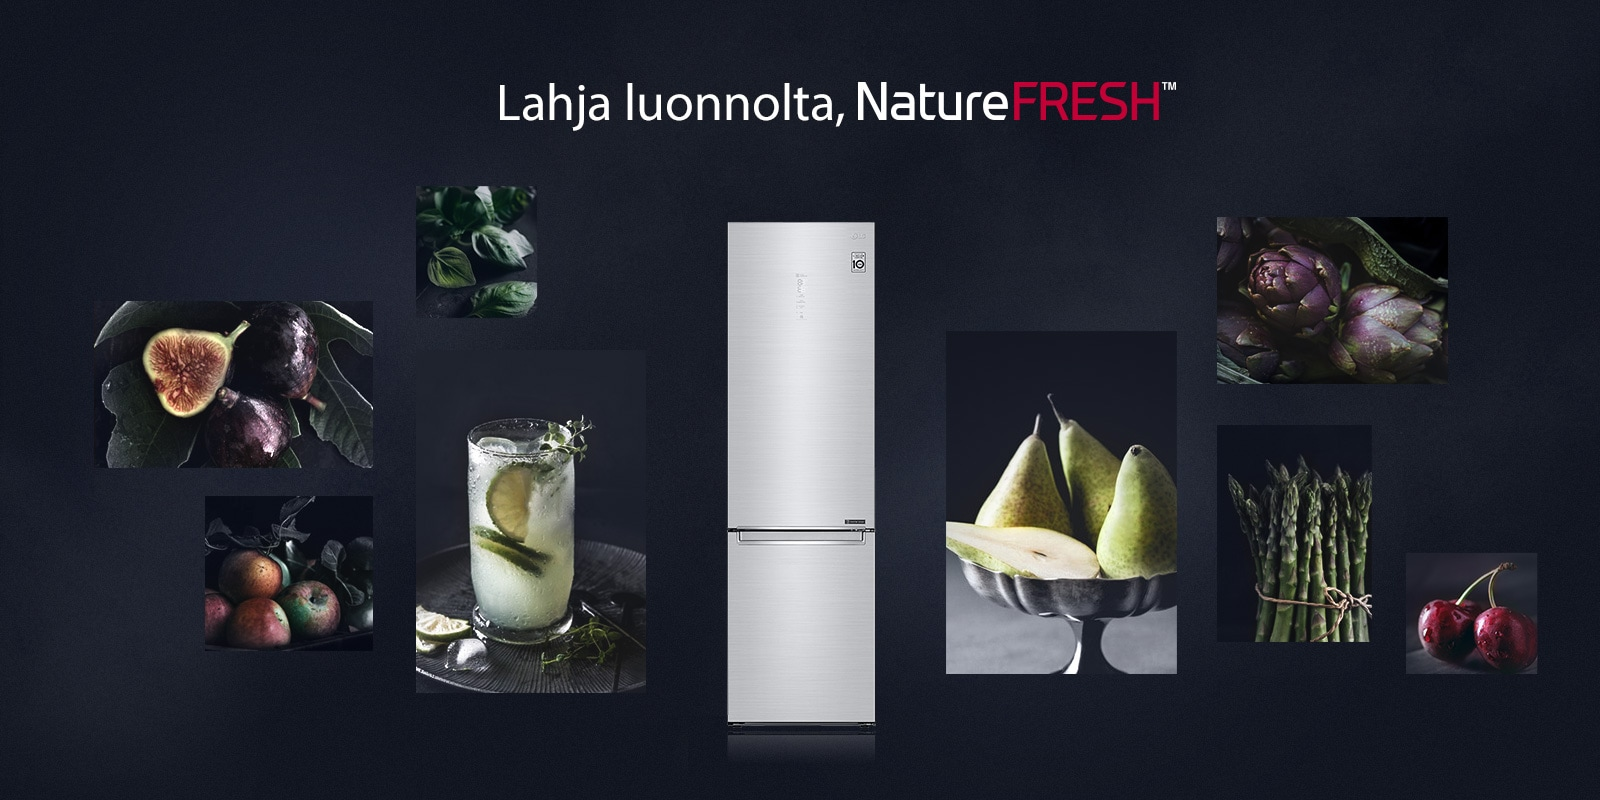 FI-REF-NatureFRESH-Vplus-HeroBanner-Desktop